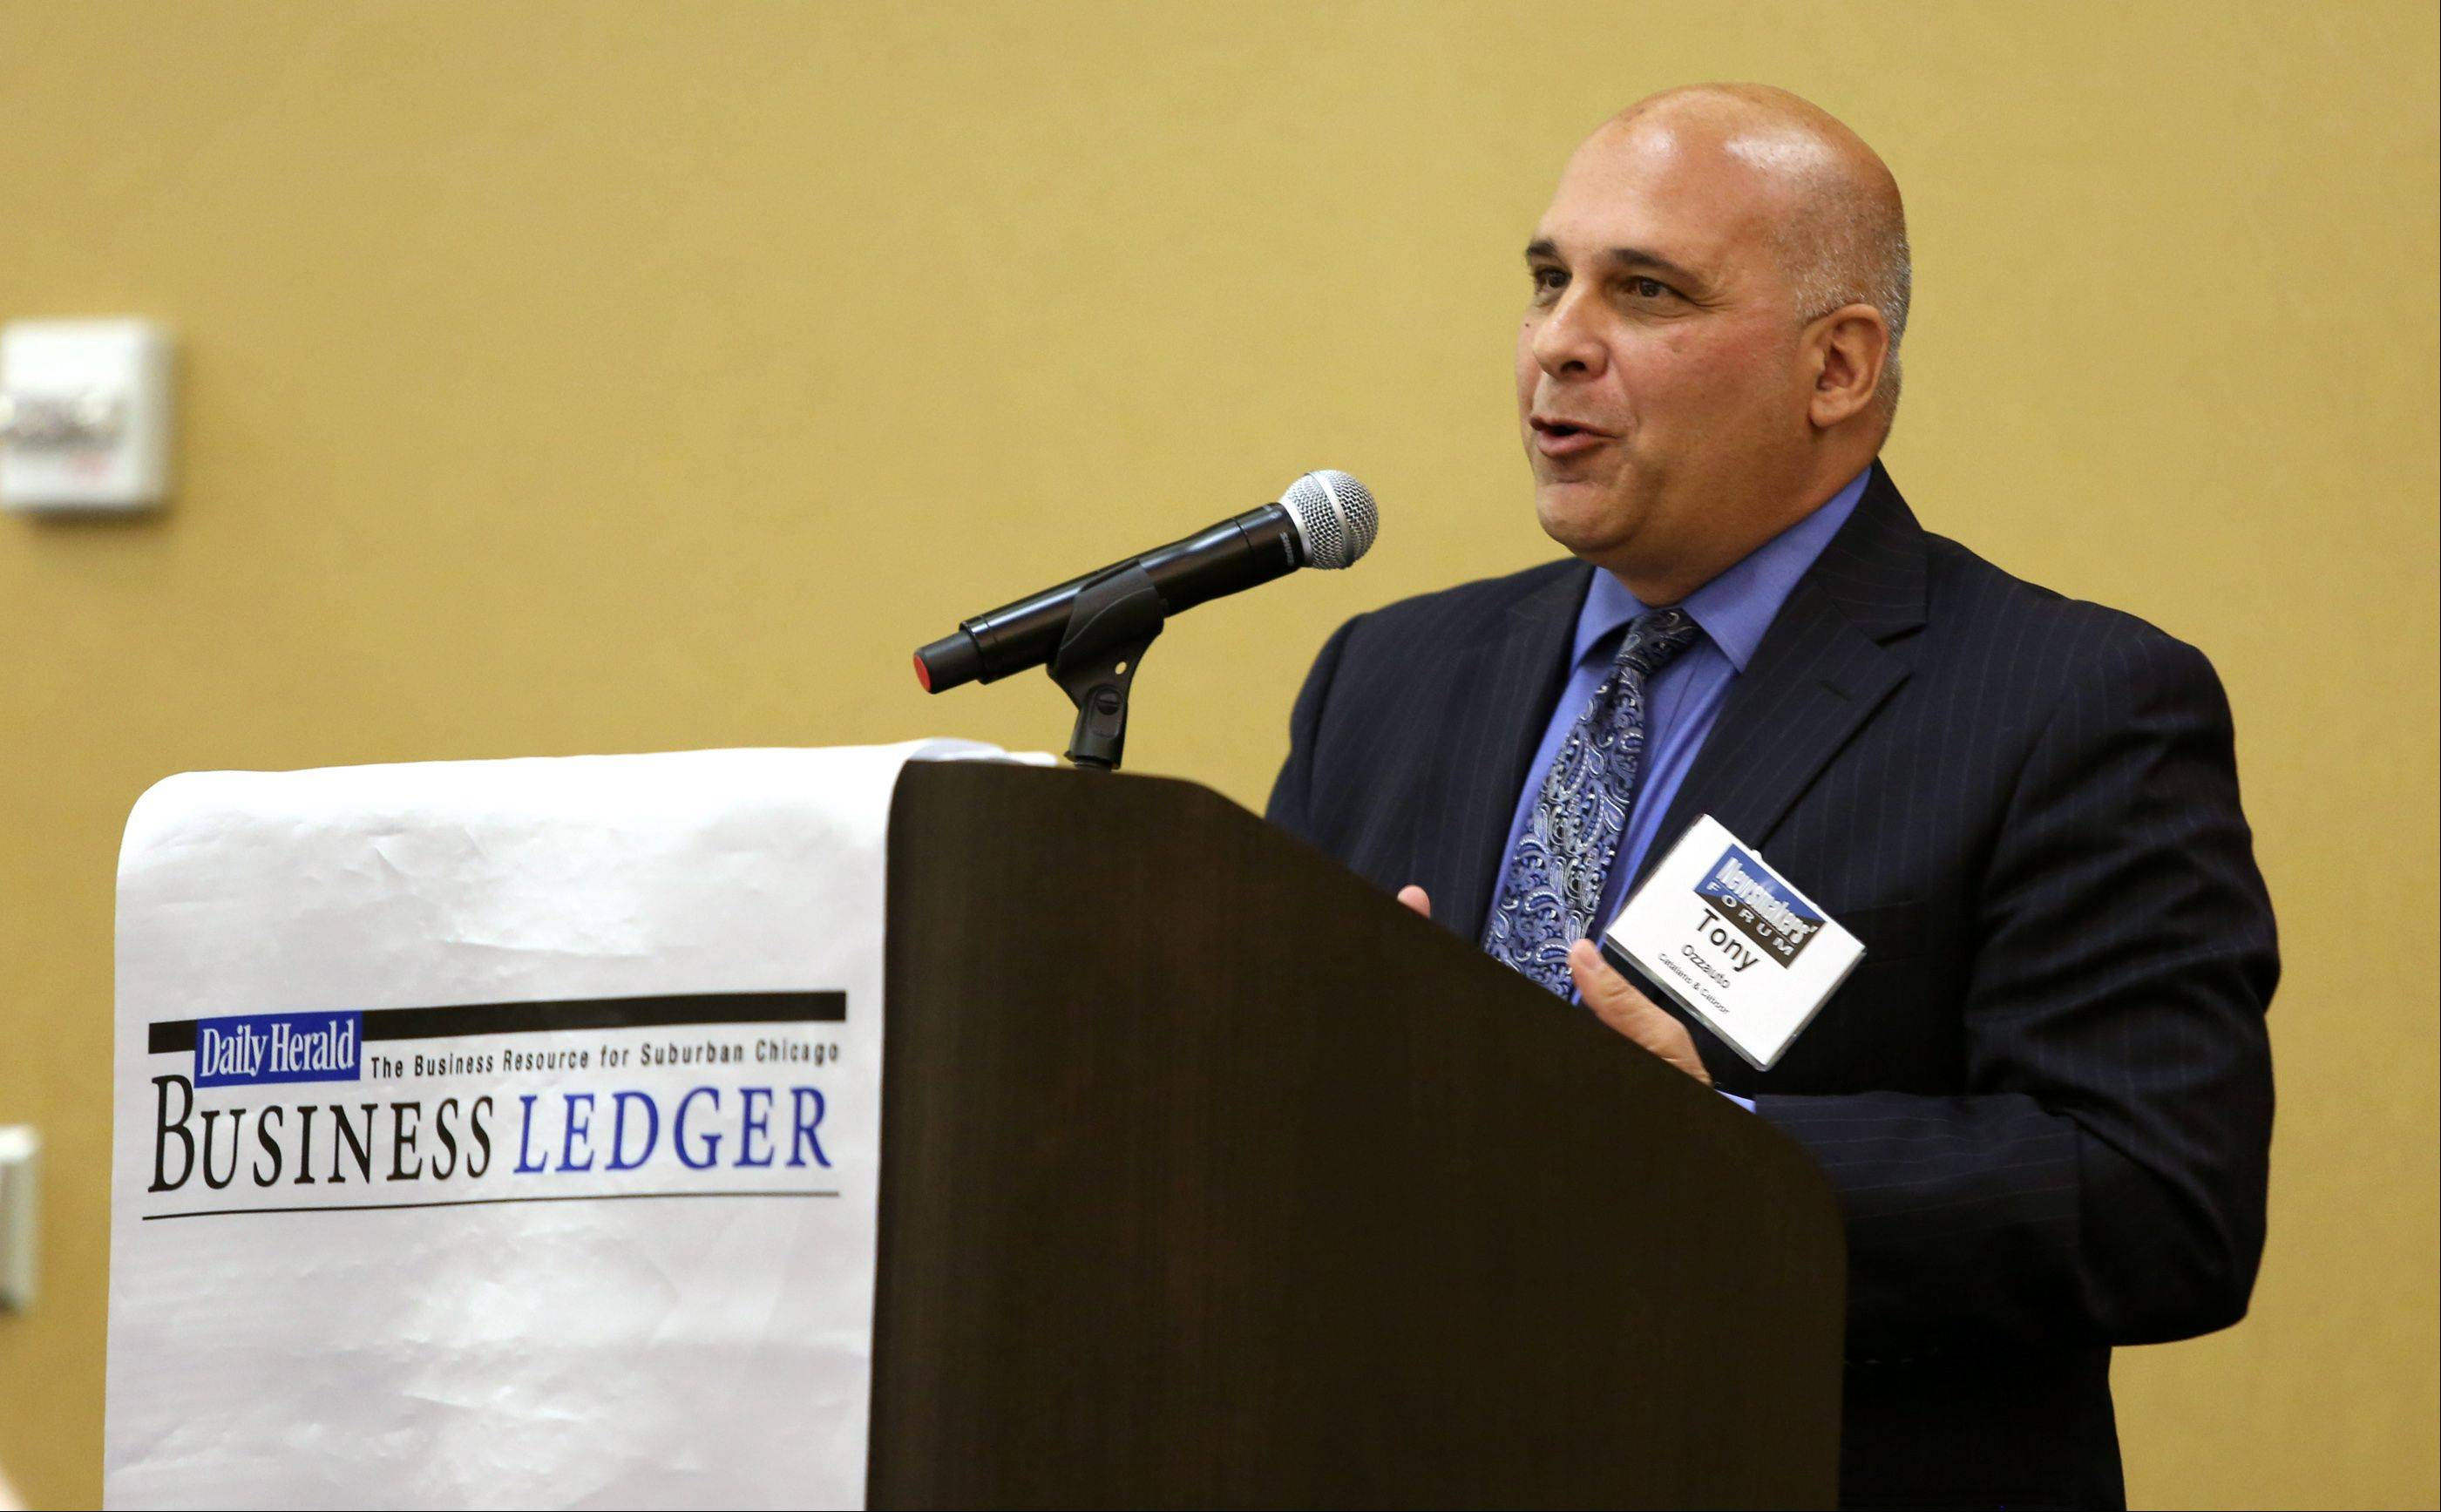 Tony Ozzauto, partner at Catalano & Caboor, speaks to the Newsmaker's Forum about Managing a Family Business. The forum was Thursday at the Doubletree by Hilton Hotel in Downers Grove.